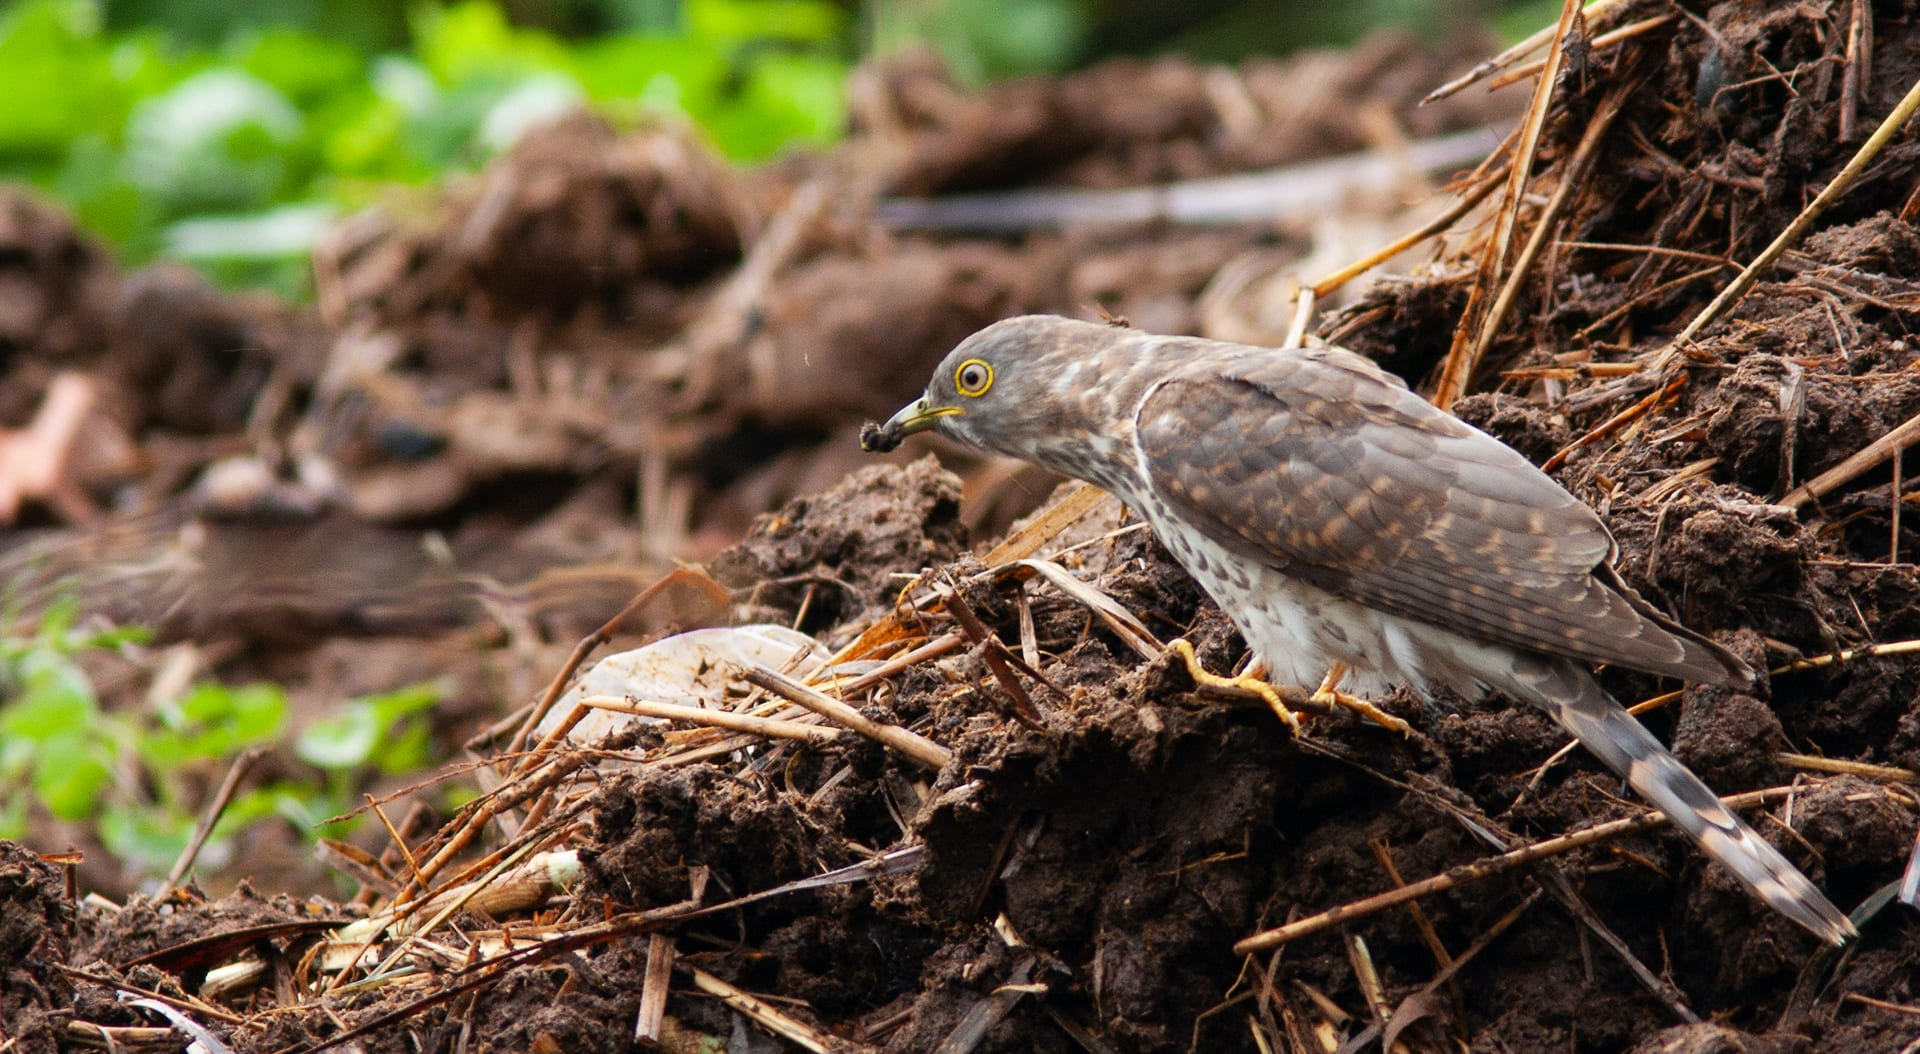 The common hawk-cuckoo feeds on insects, especially hairy caterpillars.